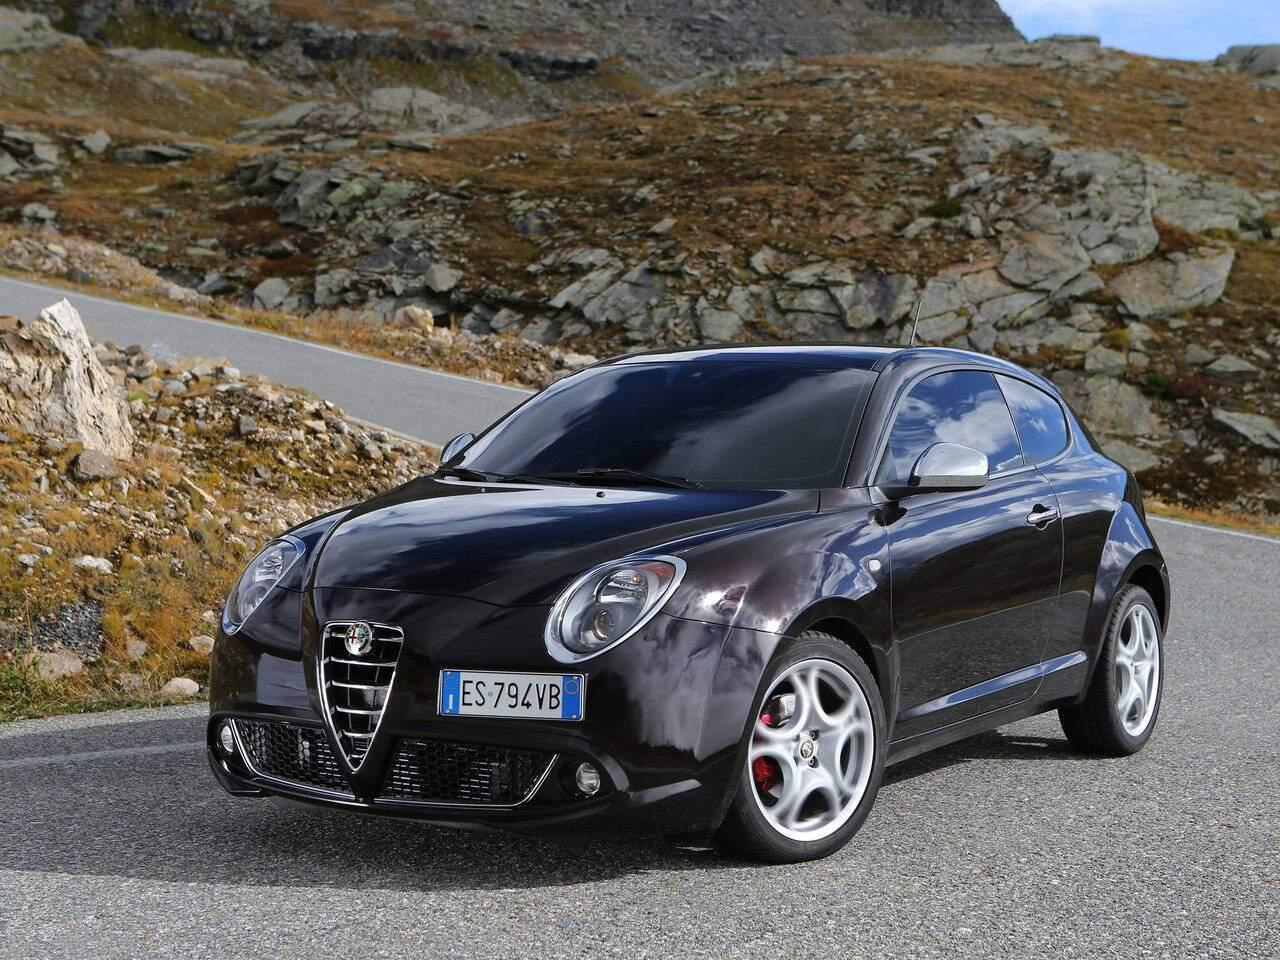 fiche technique alfa romeo mito 1 4 multiair 140 2014. Black Bedroom Furniture Sets. Home Design Ideas